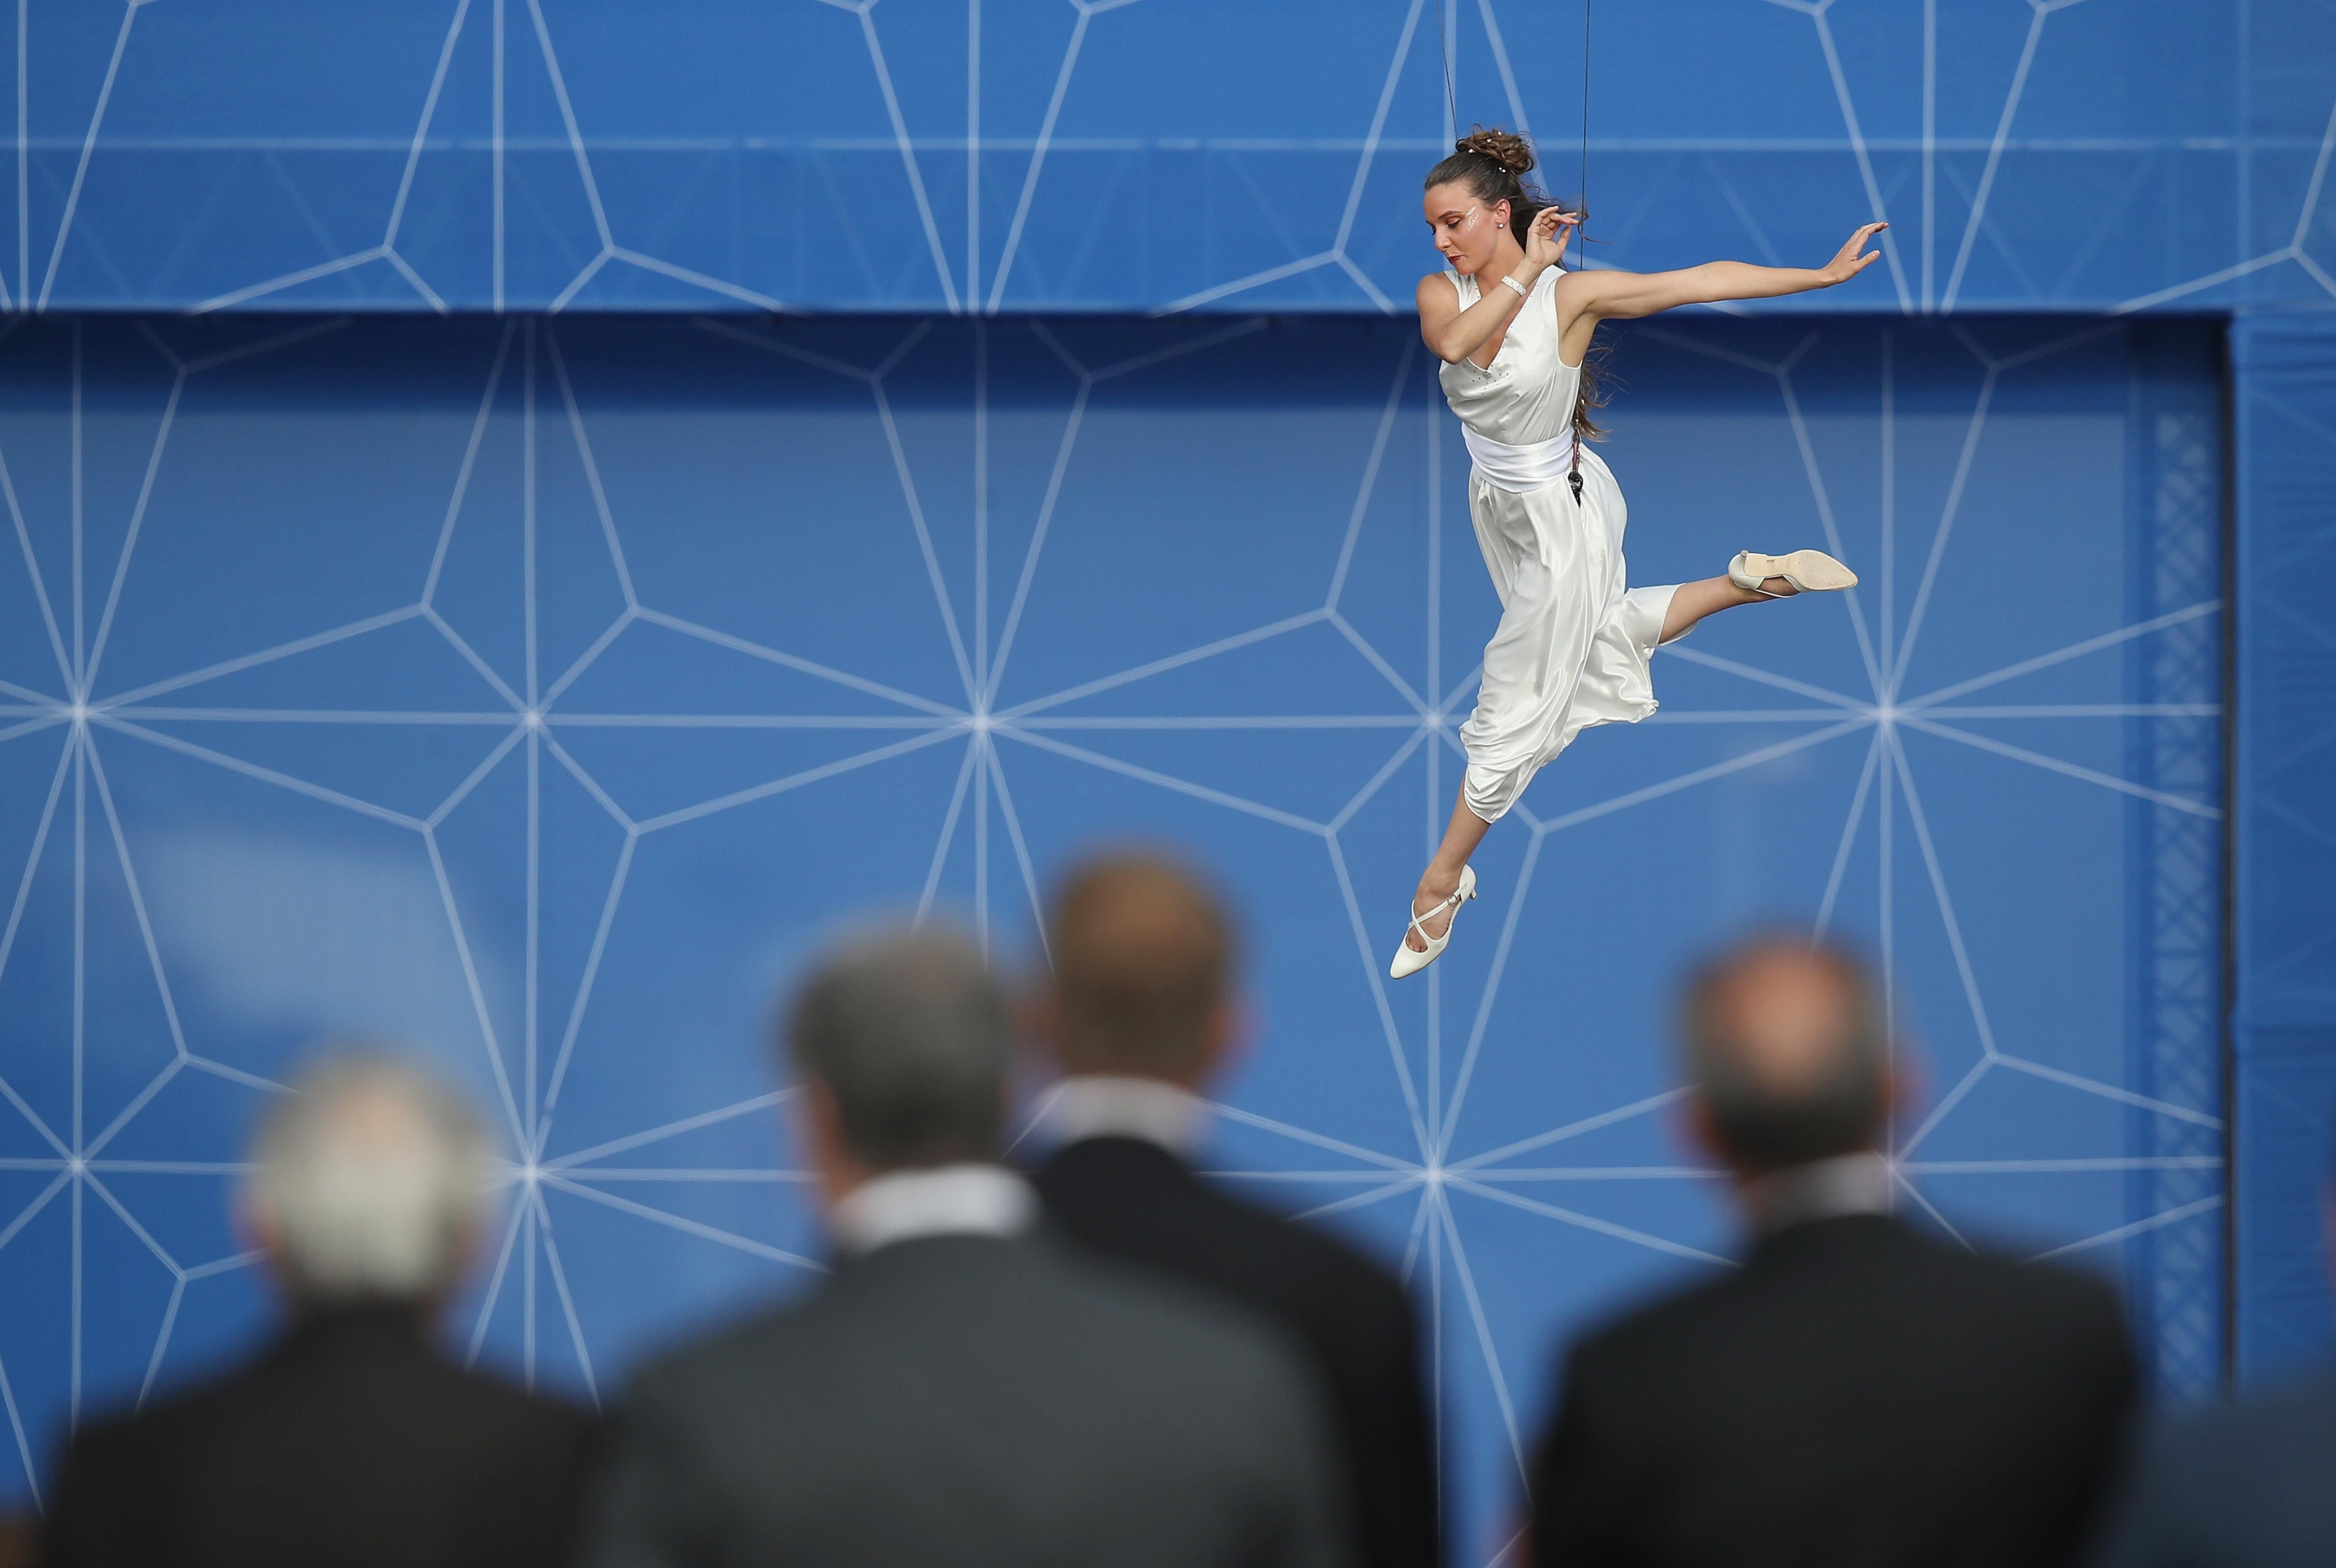 BRUSSELS, BELGIUM - JULY 11:  A performer dances suspended from balloons as heads of state and governments, as well as their spouses, watch at the evening reception and dinner at the 2018 NATO Summit on July 11, 2018 in Brussels, Belgium. Leaders from NATO member and partner states are meeting for a two-day summit, which is being overshadowed by strong demands by U.S. President Trump for most NATO member countries to spend more on defense.  (Photo by Sean Gallup/Getty Images)